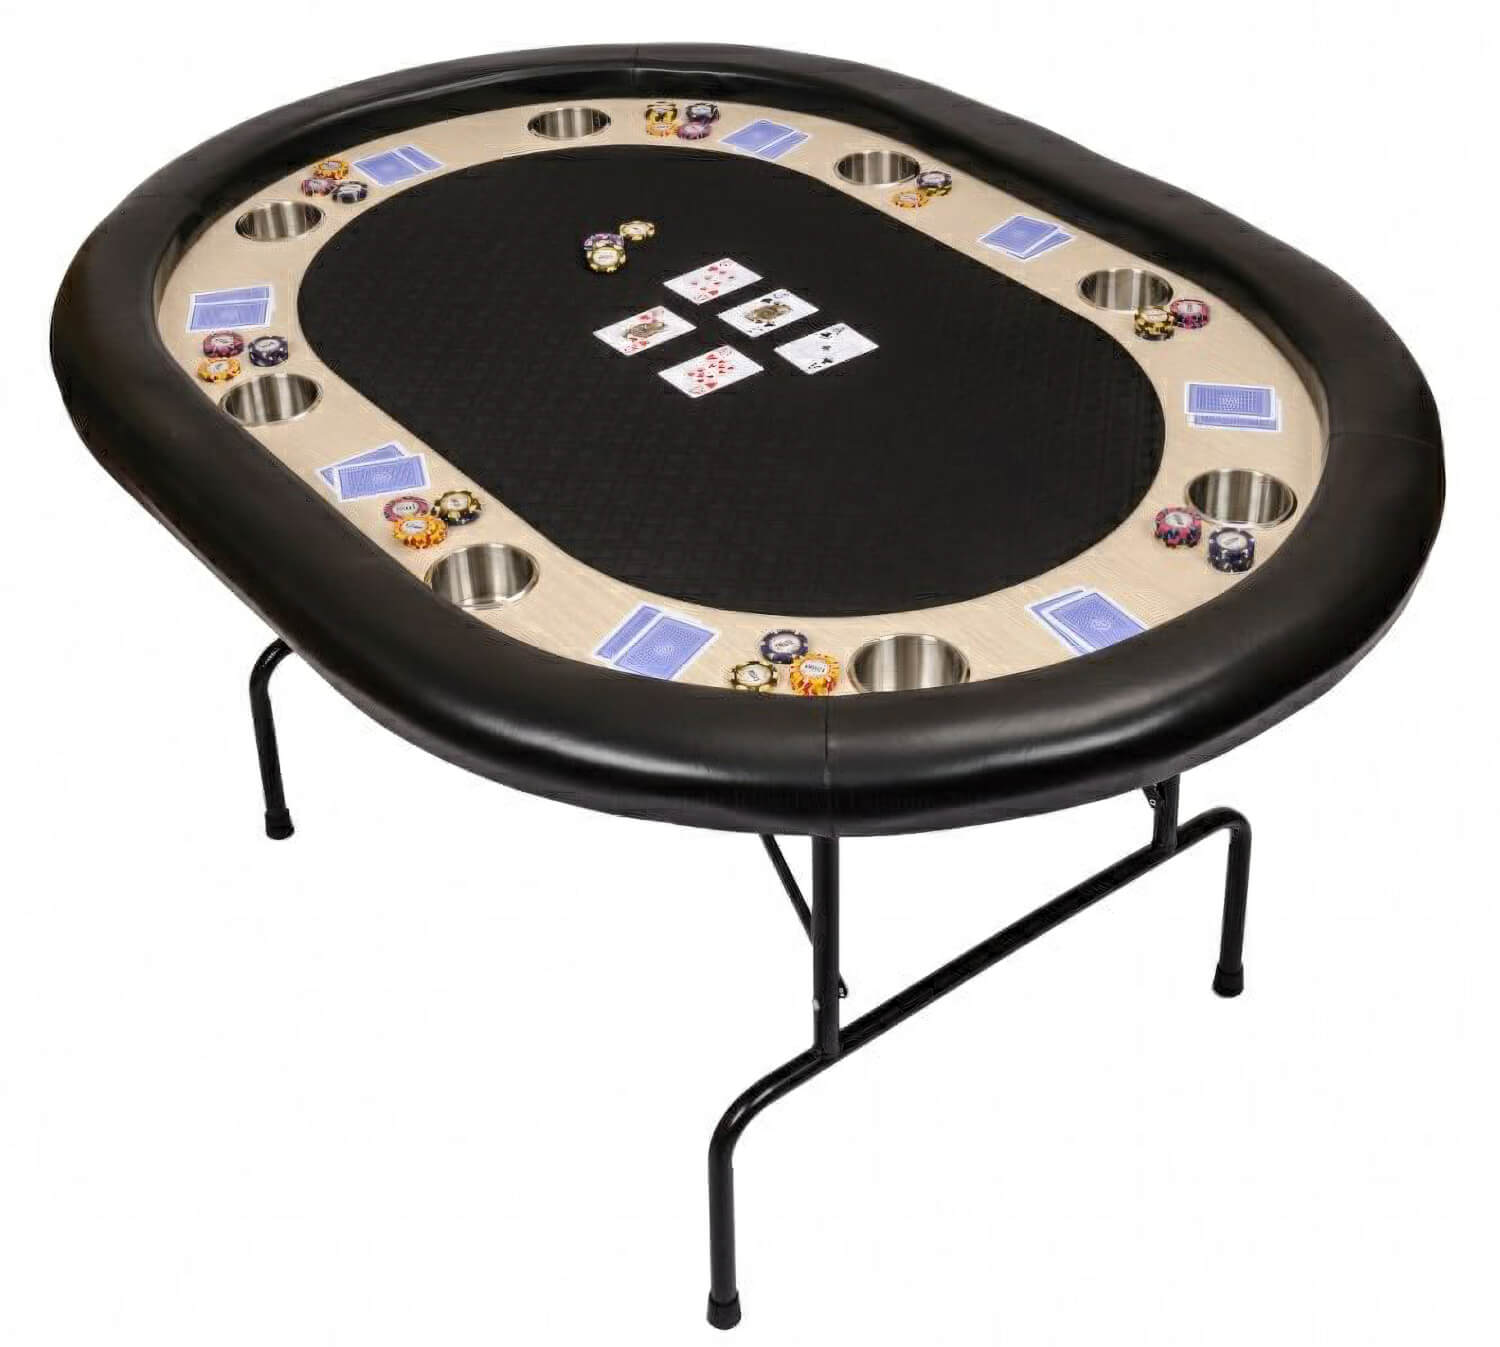 Used Coin Operated Pool Tables For Sale Home Poker Tables & Casino Accessories Poker Tables & Casino Equipment